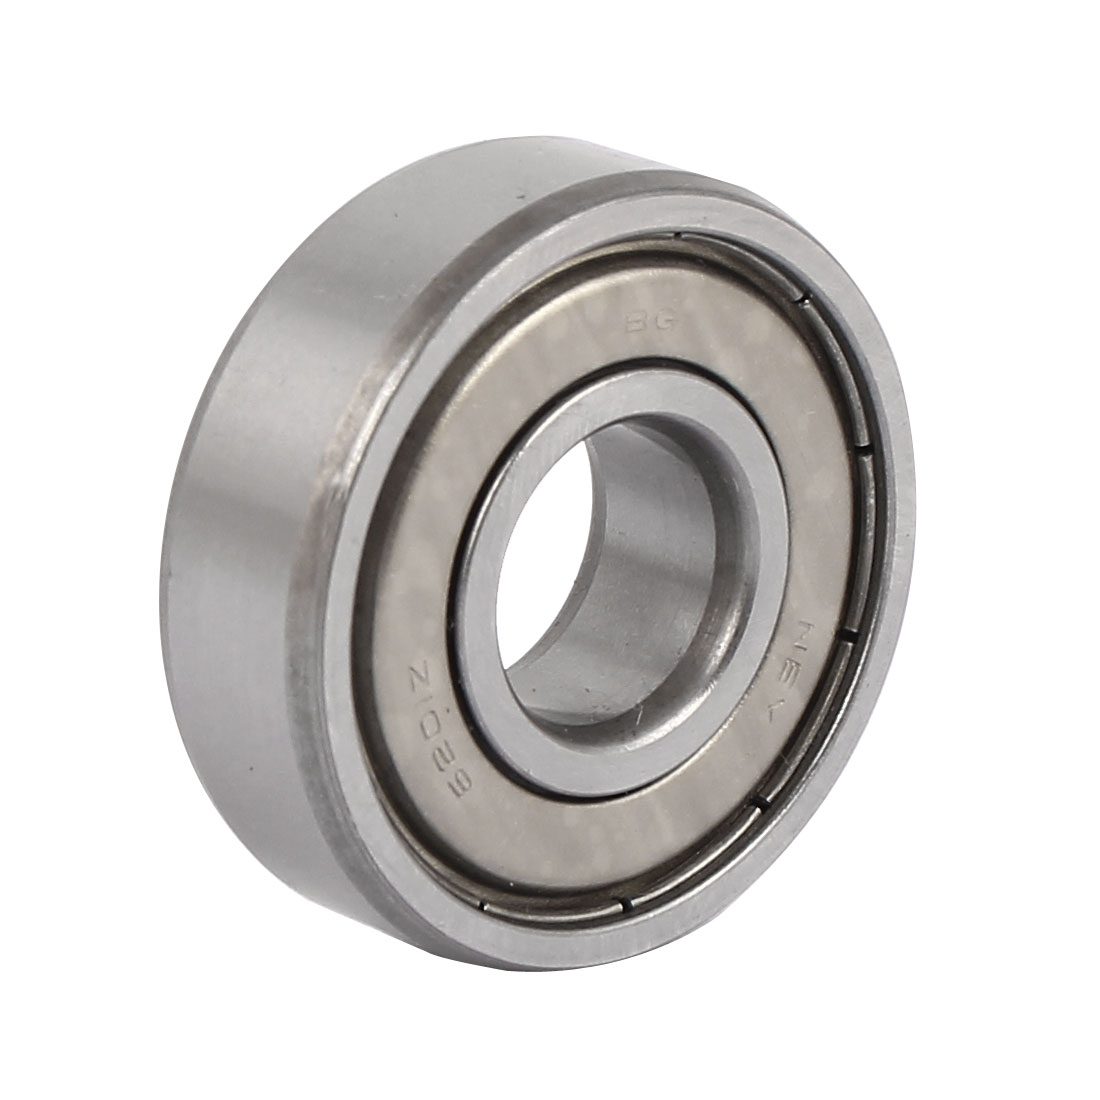 ZZ6205 52mm x 25mm x 15mm Single Row Double Shielded Deep Groove Ball Bearing